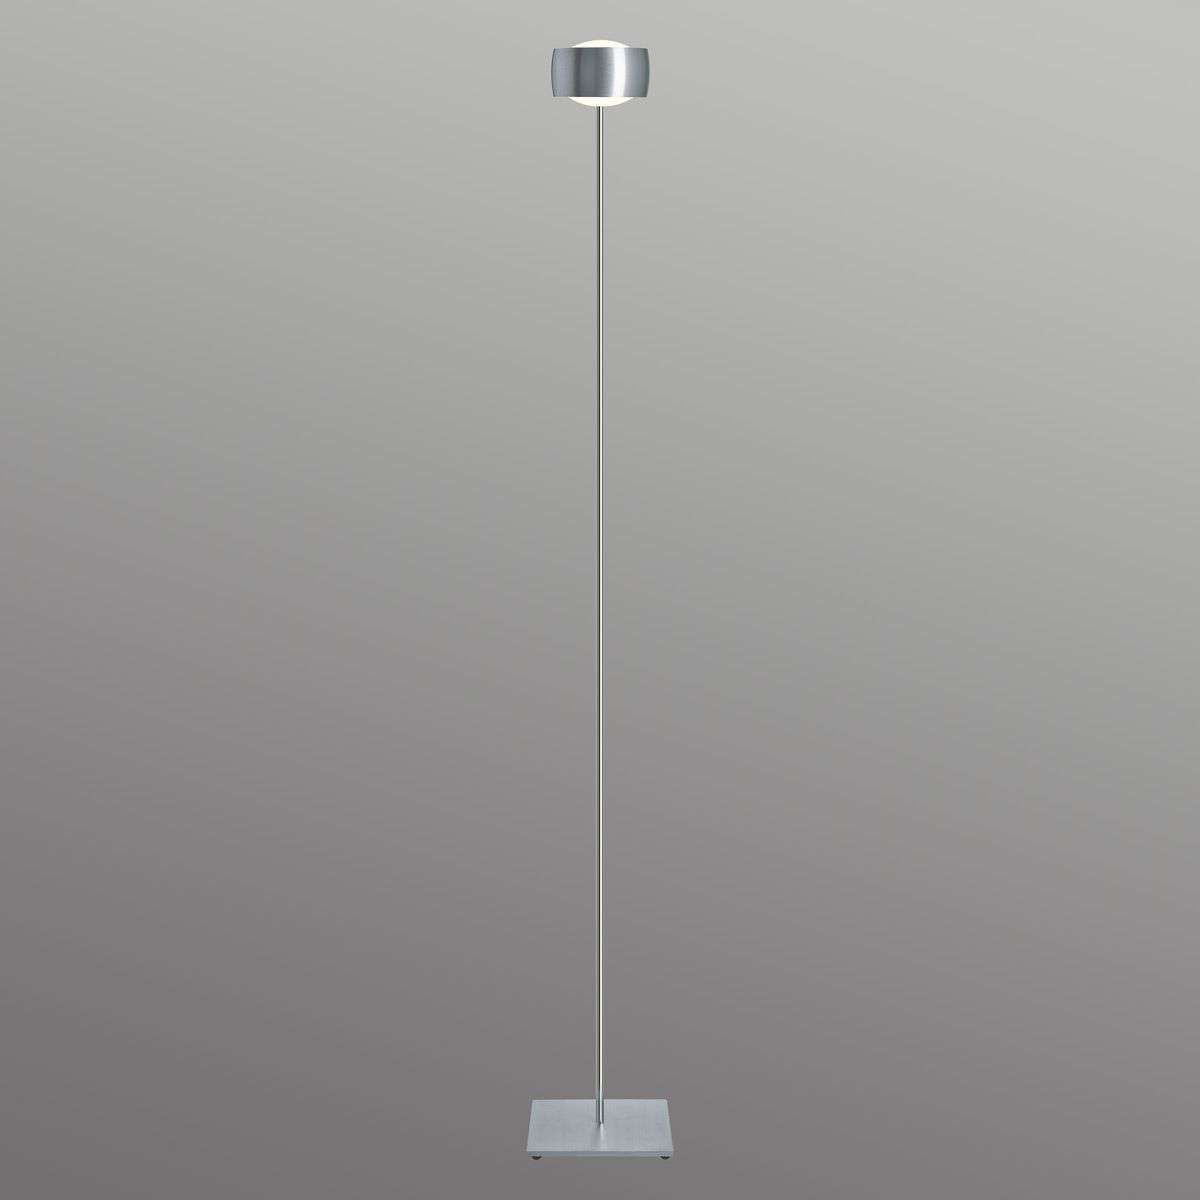 Slim dimmable floor lamp grace lights small floor lamp grace brushed aluminium 7250165 31 aloadofball Image collections